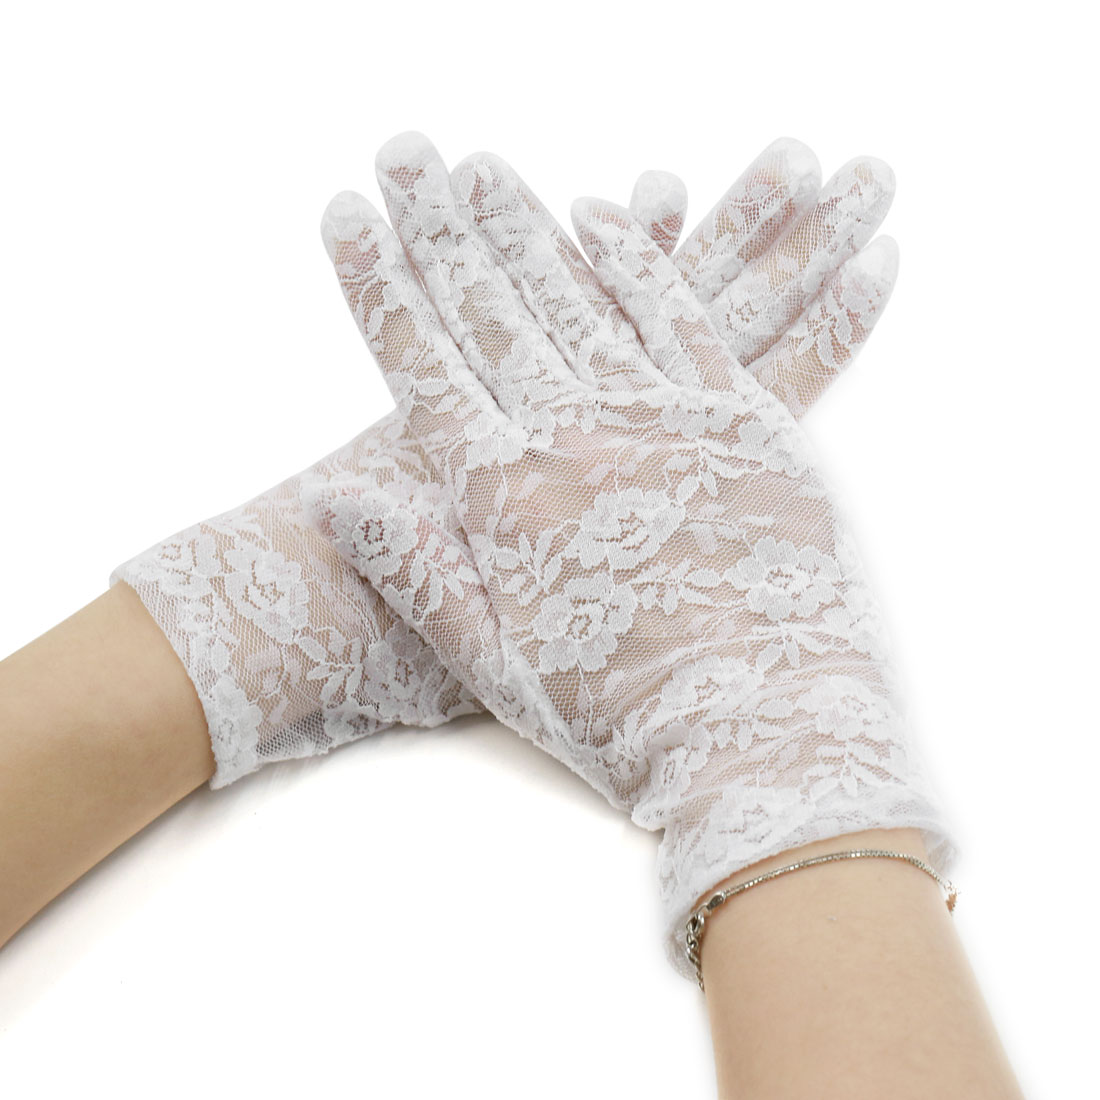 Women's Floral Lace Wrist Length Full Finger Gloves Pair White